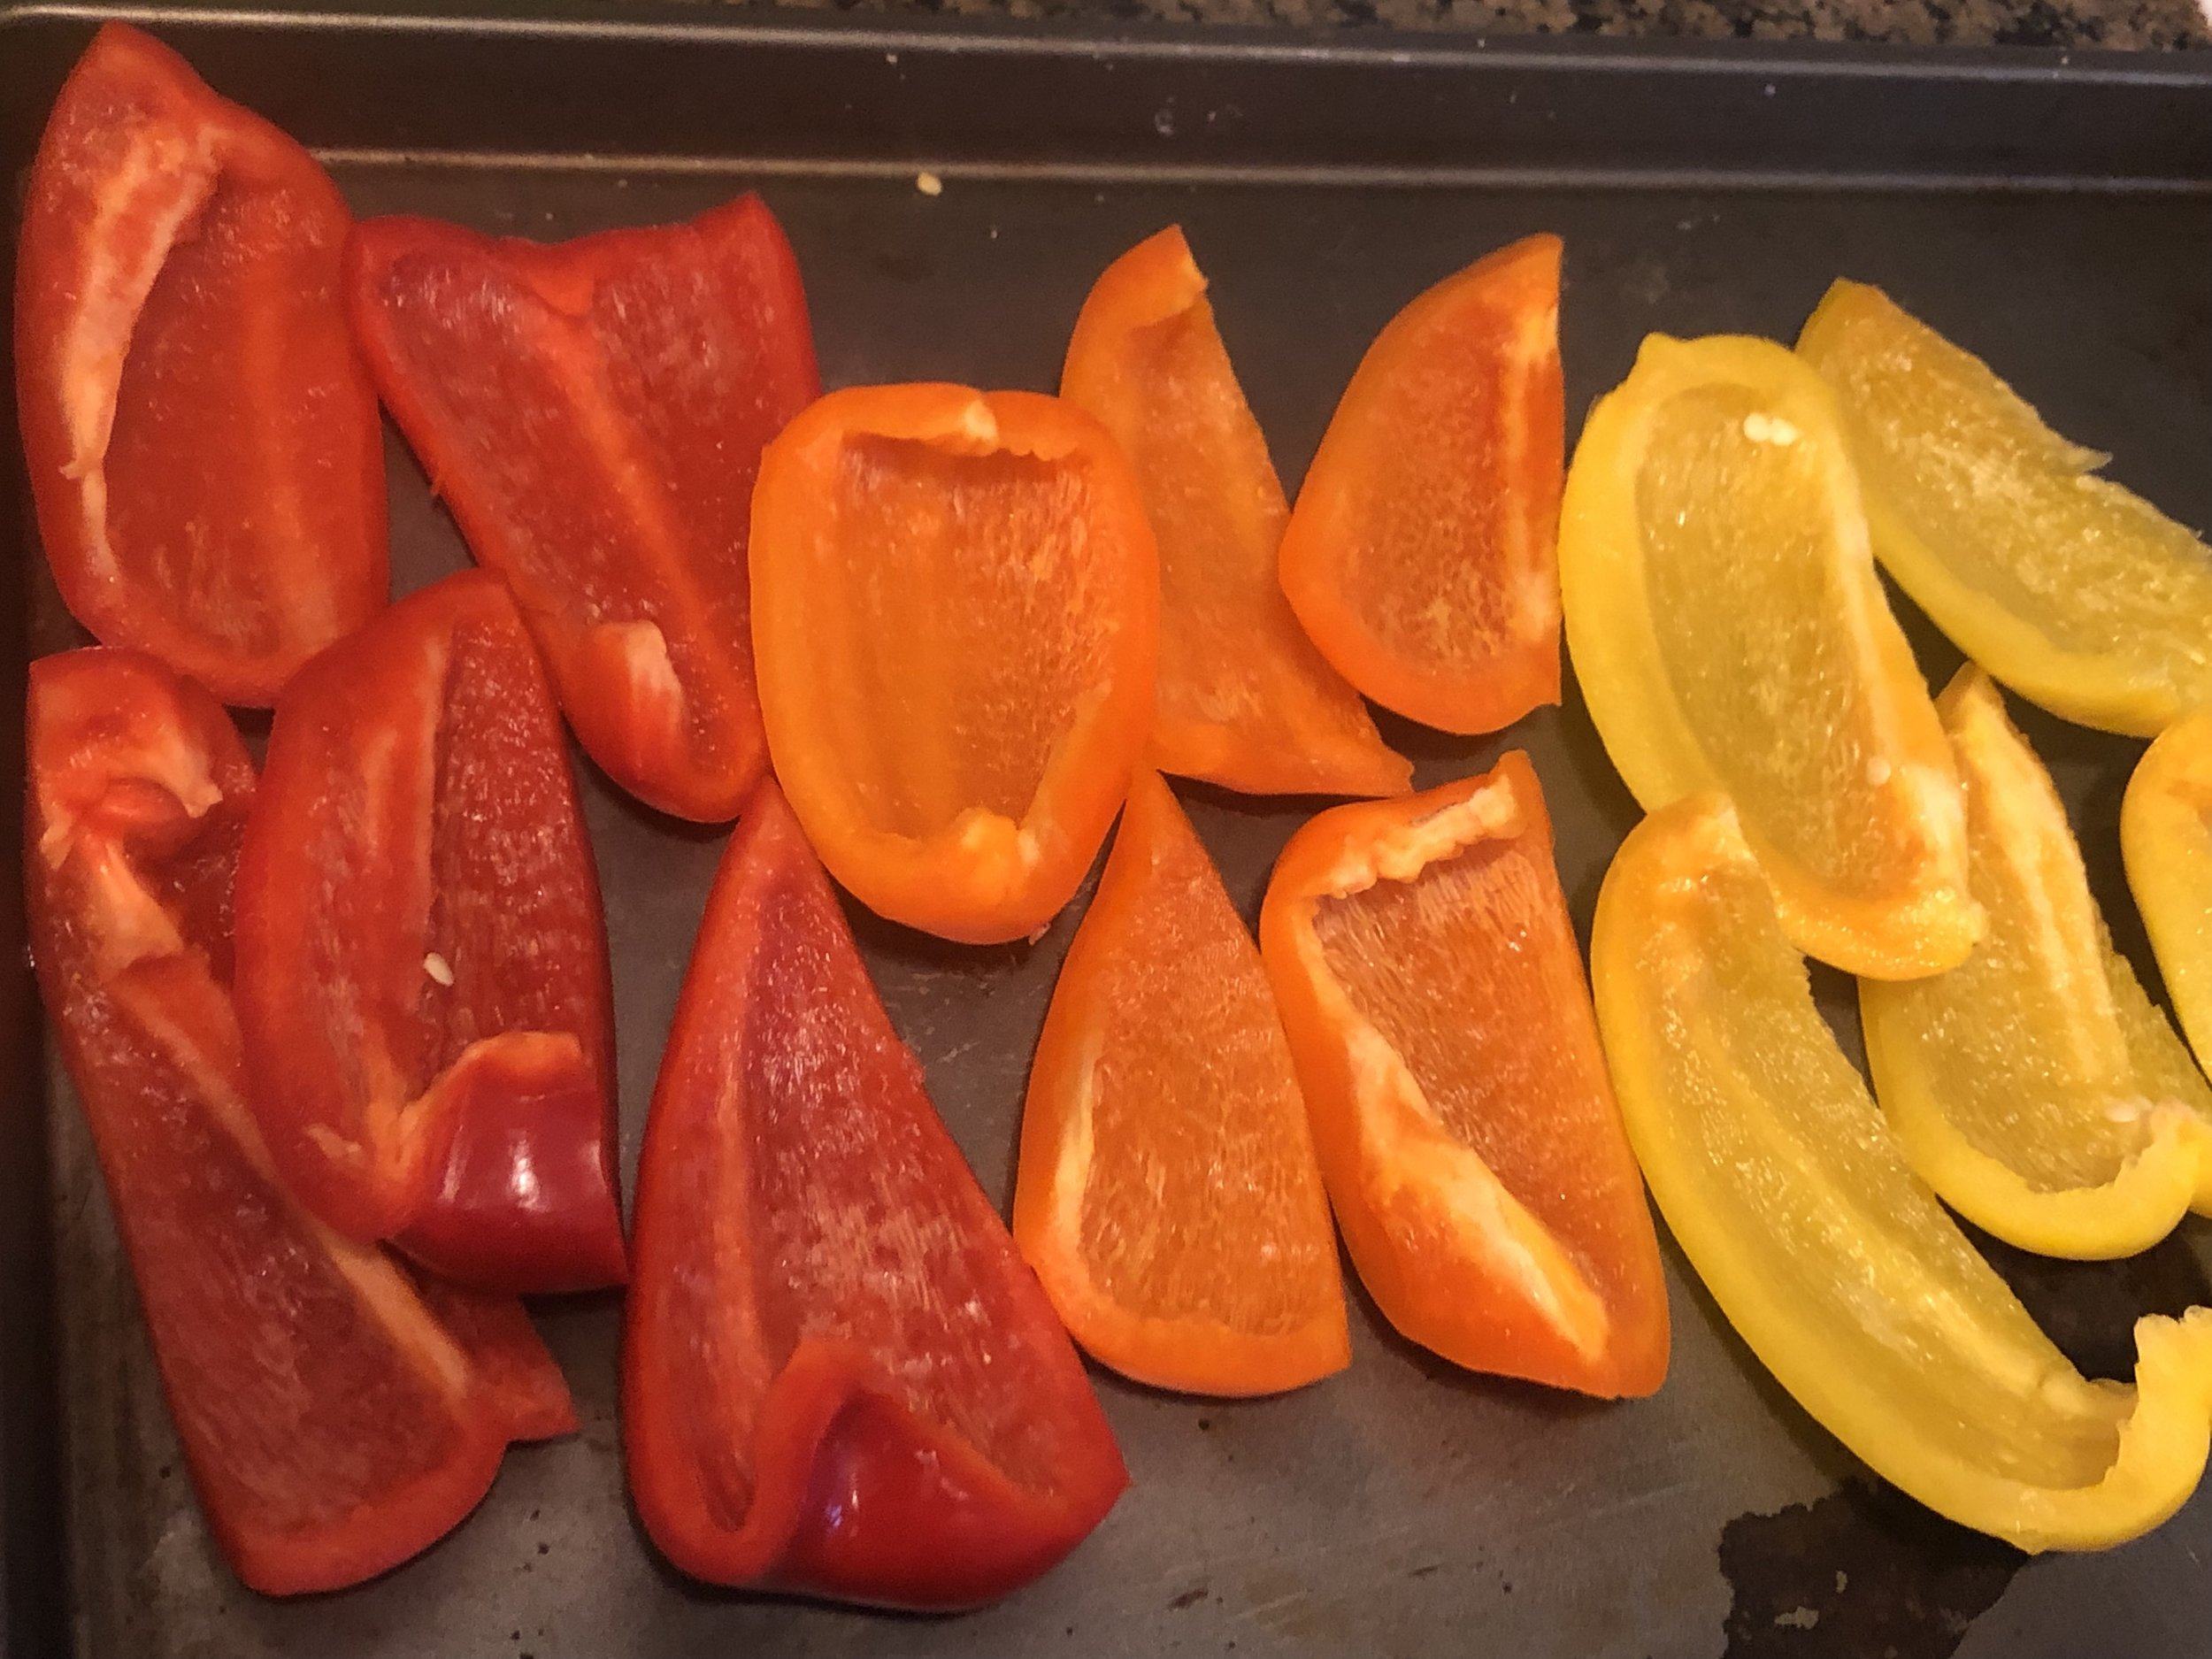 Cut bell peppers in half lengthwise and remove stems, ribs, and seeds; discard. Place bell peppers on a rimmed baking sheet and drizzle with 3 Tbsp. oil; season with salt and black pepper. Toss to coat, then turn cut side down and broil bell peppers on top rack, turning baking sheet front to back halfway through, until skins are blackened all over, 15–20 minutes.